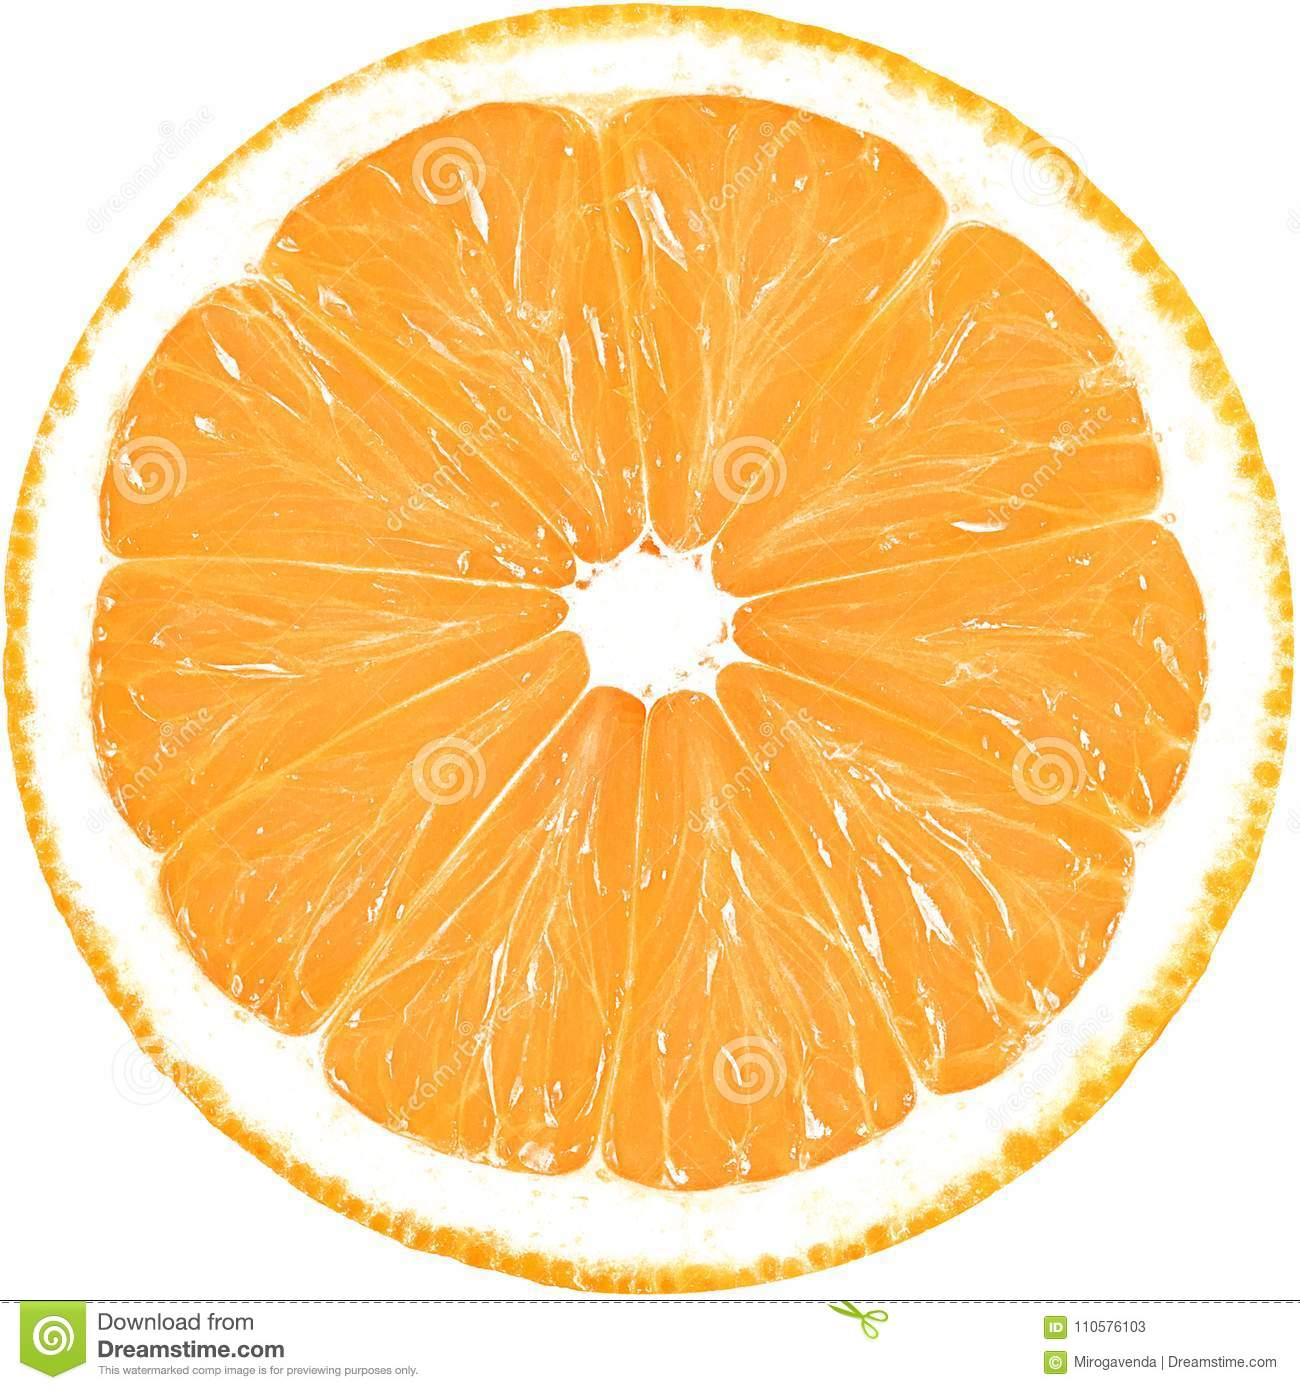 Juicy slice of orange isolated on a white background with clipping path.